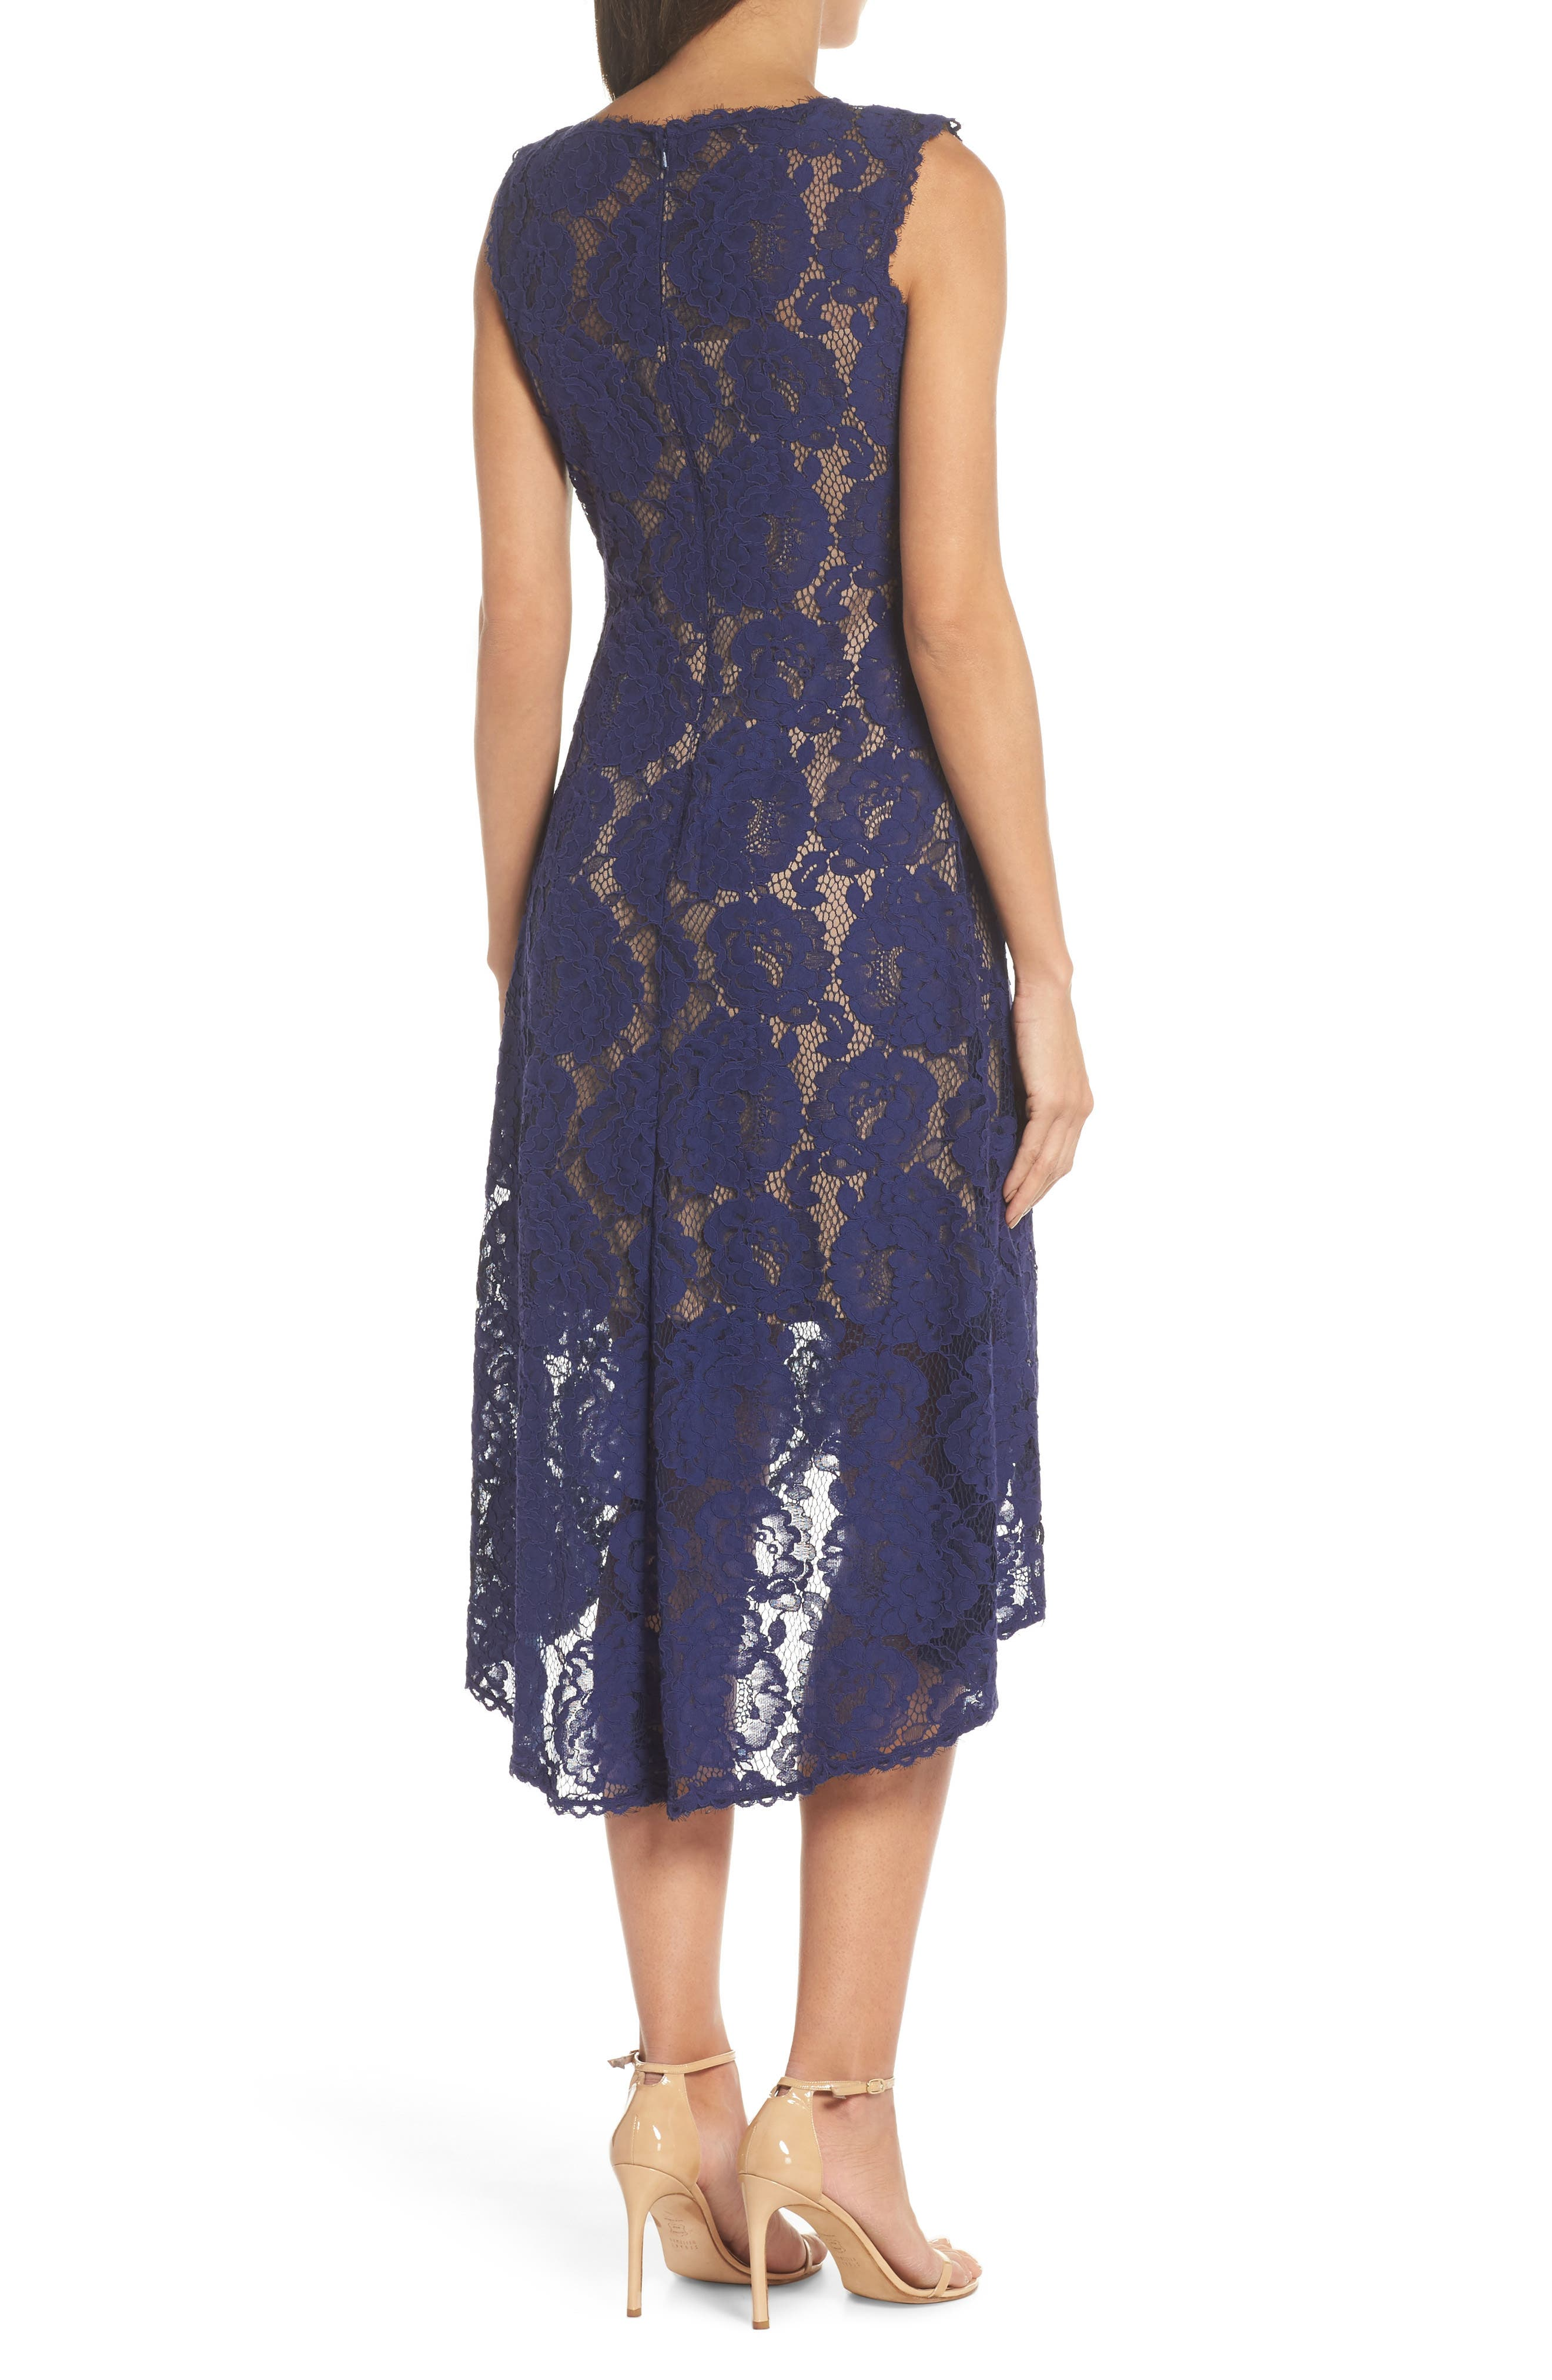 TADASHI SHOJI,                             High/Low Lace Dress,                             Alternate thumbnail 2, color,                             420